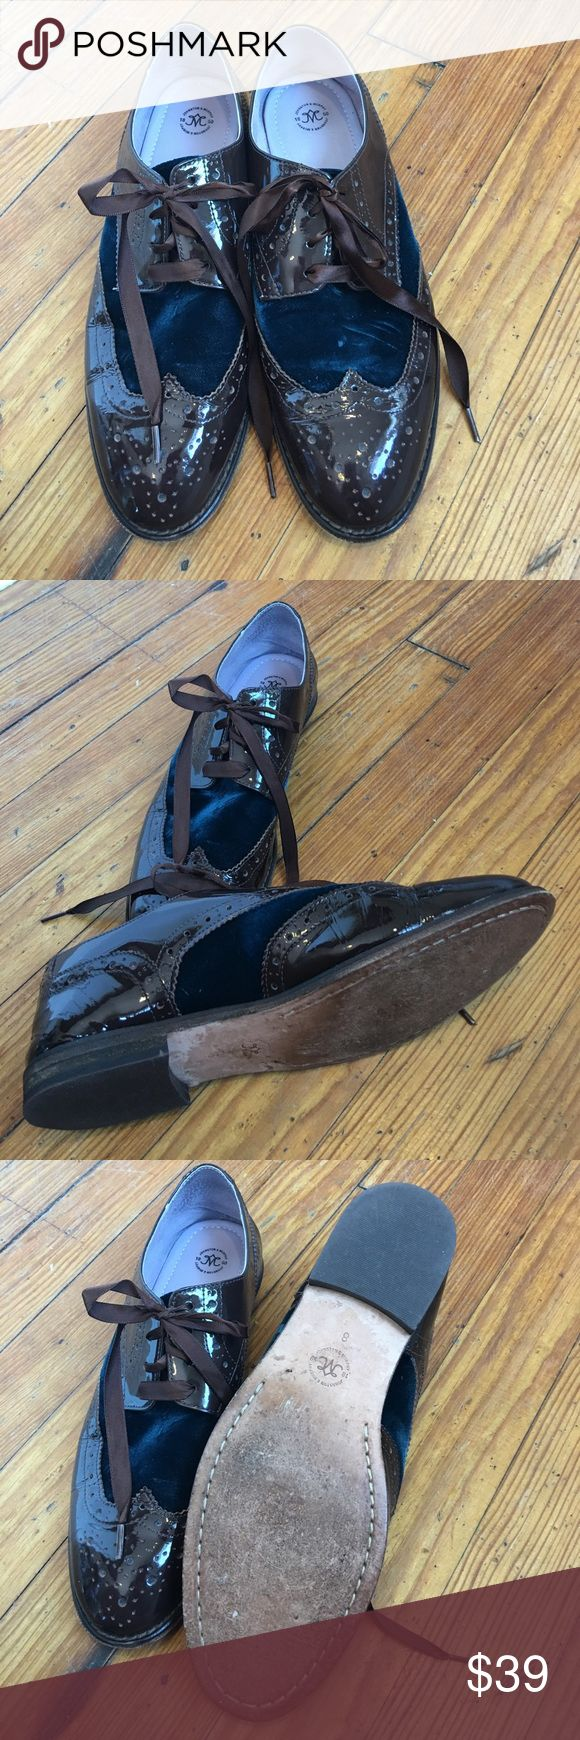 JOHNSON AND MURPHY BROWN NAVY TIE FLAT JOHNSON AND MURPHY SIZE  8 tie loafer brown patent and navy velvet accent. Very small irregularity on left velvet. Otherwise very good condition. THe shoe is a looker Johnson and Murphy Shoes Flats & Loafers